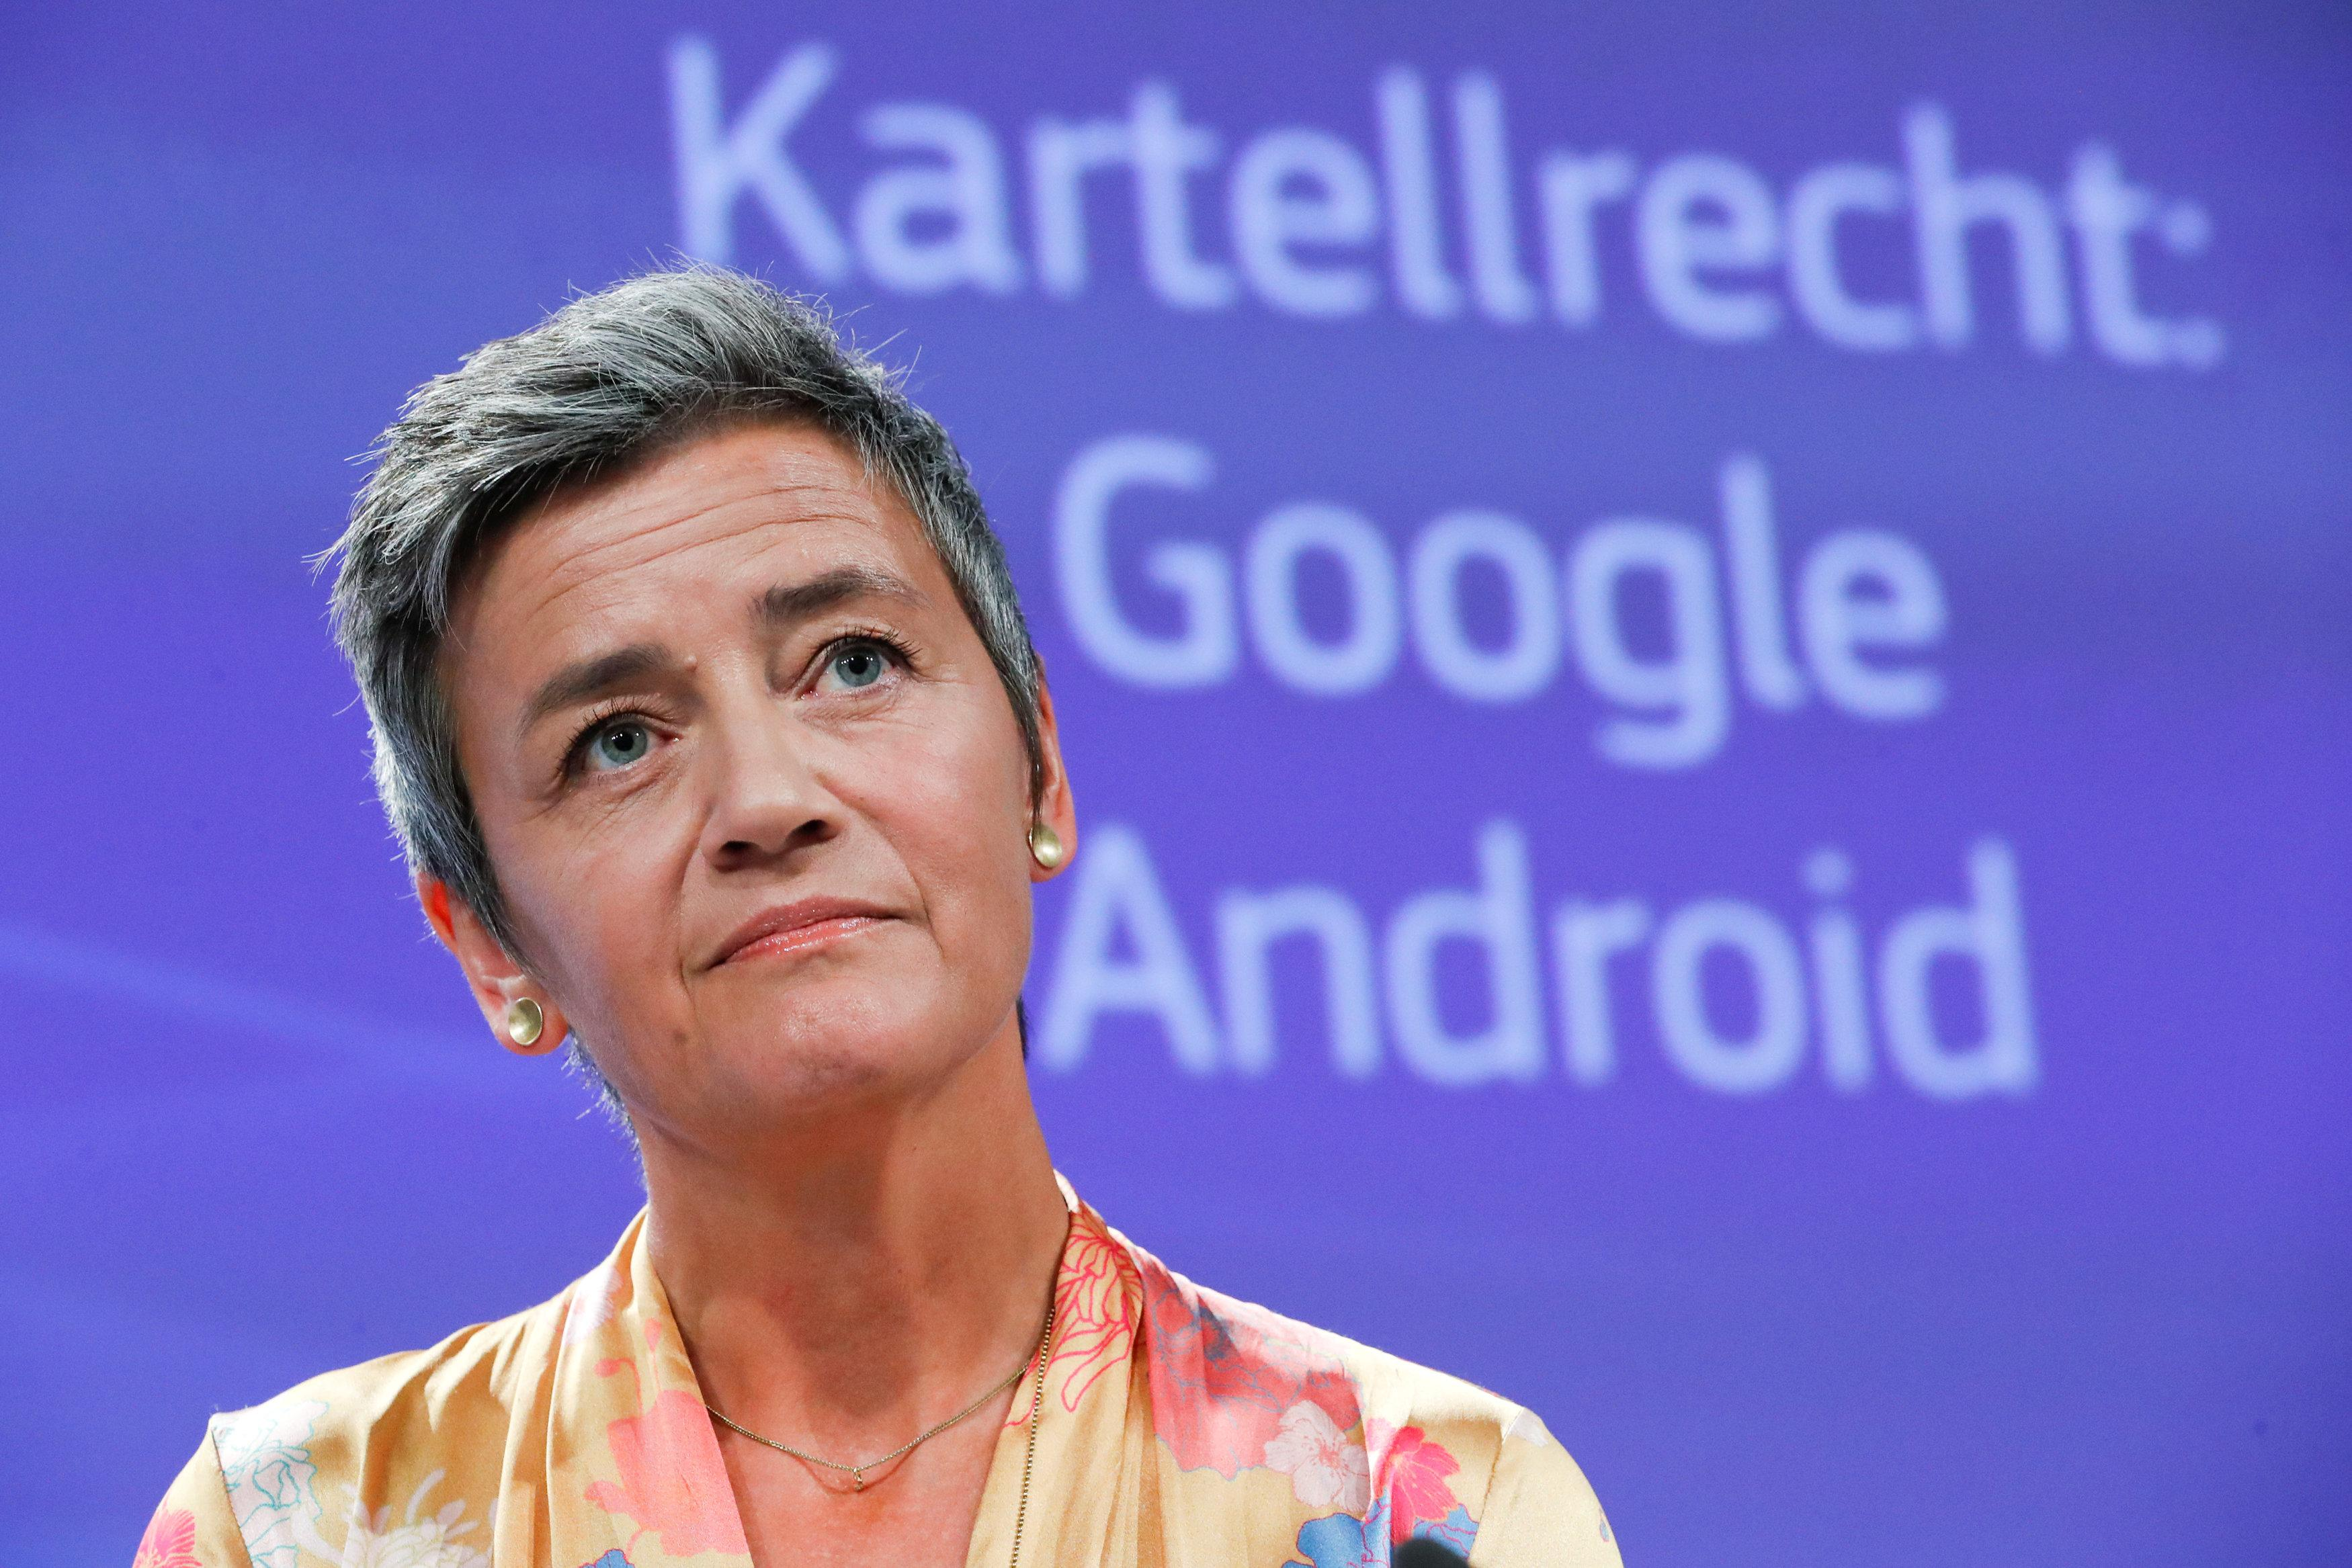 European Competition Commissioner Margrethe Vestager addresses a news conference on Google in Brussels, Belgium, July 18, 2018. Yves Herman